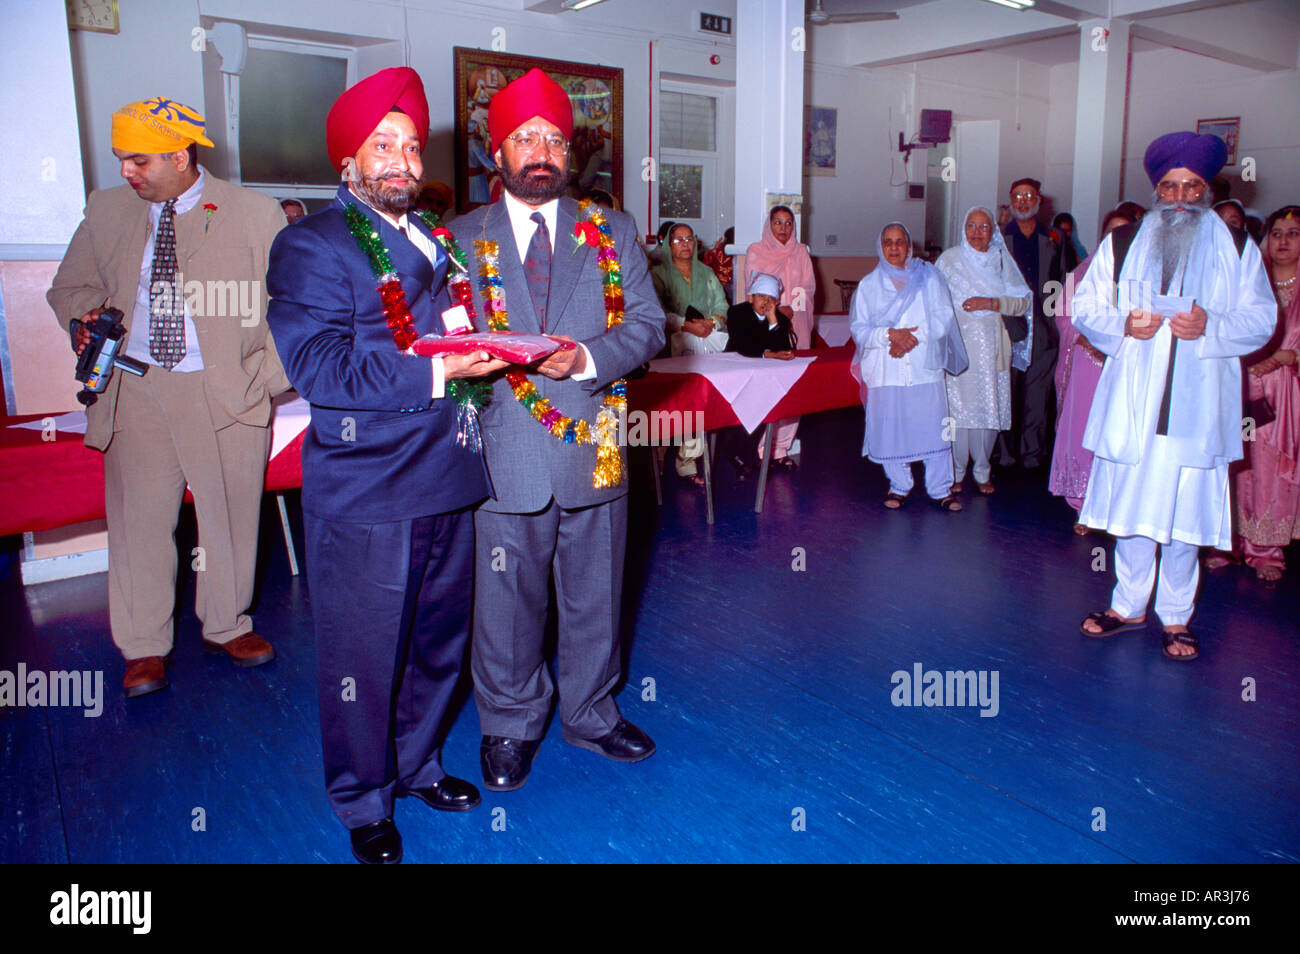 Sikh Wedding Family Members Exchanging Gifts Garlands Before Central Gurdwara Shepherds Bush London England